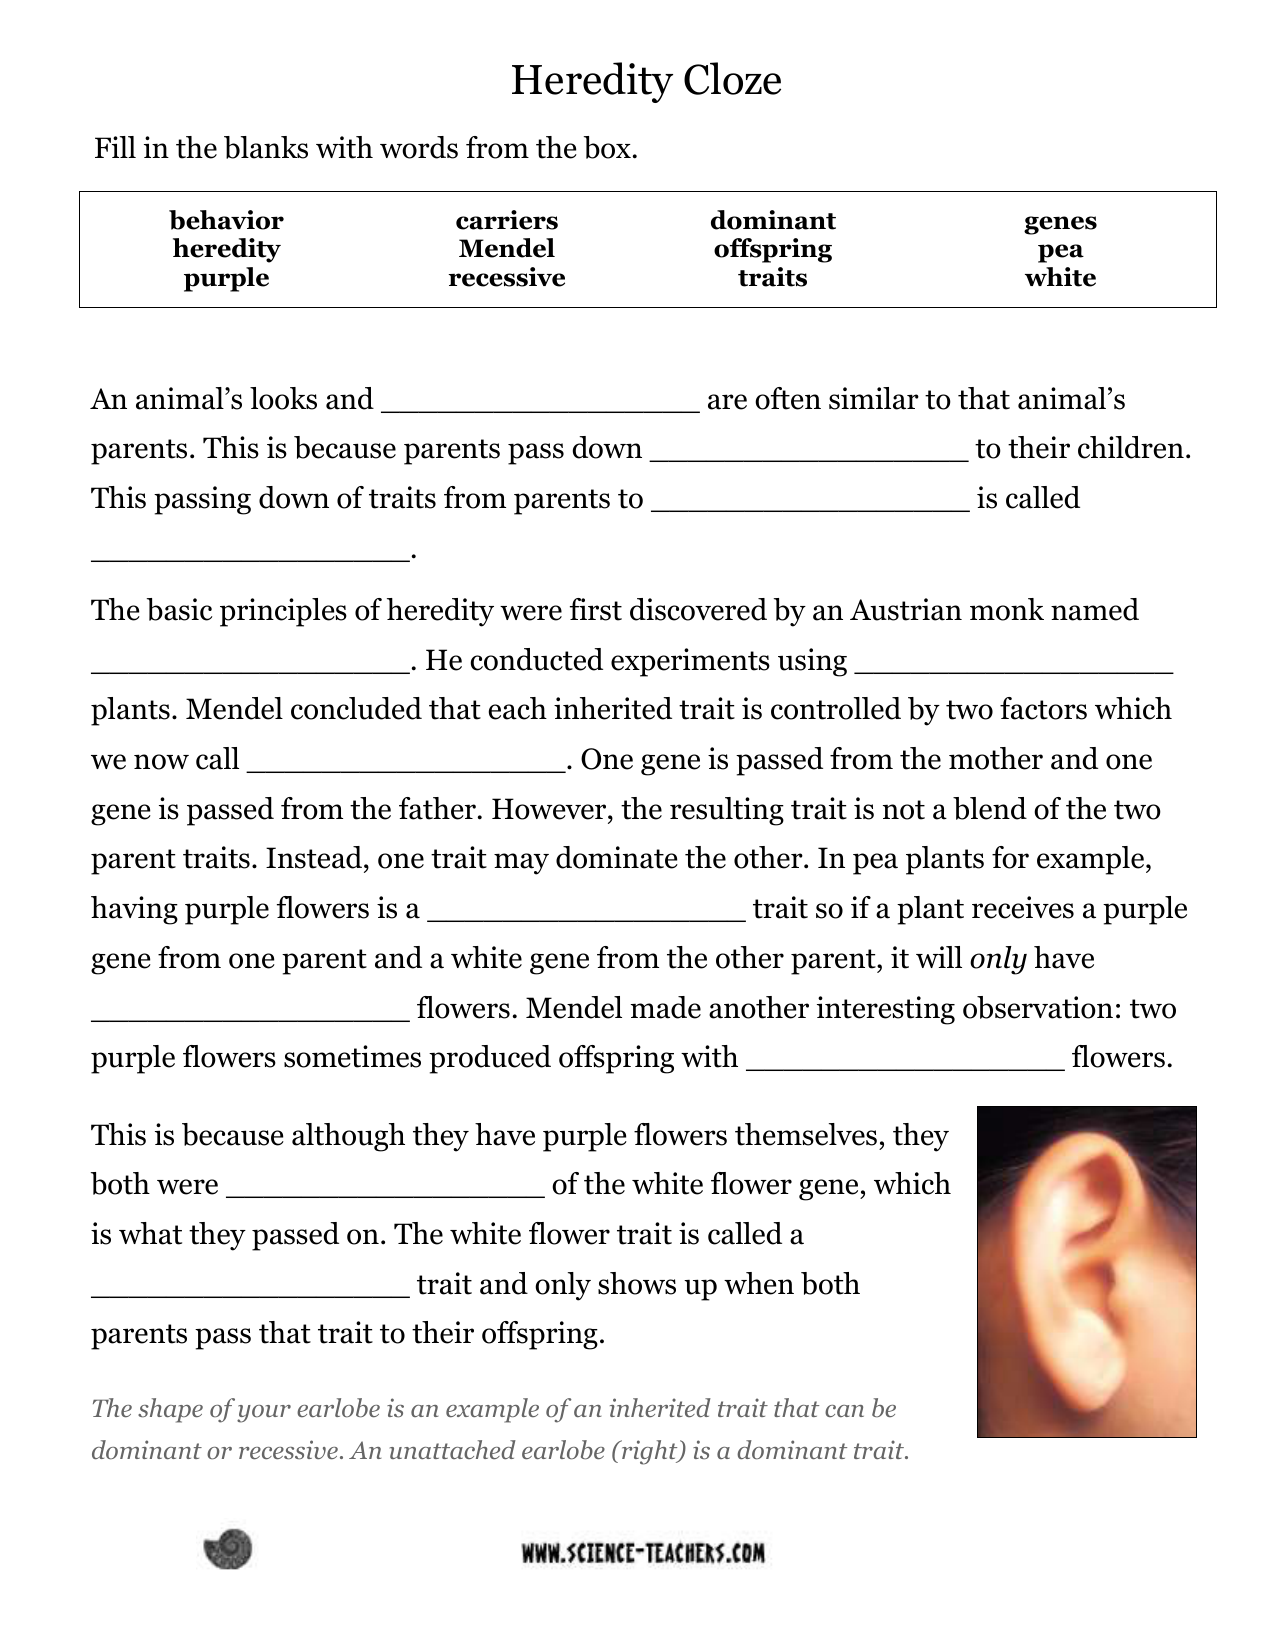 Heredity Cloze - Science on animal challenges worksheets, animal actions worksheets, animal life cycle worksheets, animal activities worksheets, animal health worksheets, animal cells worksheets, days of the week worksheets, similarities and differences worksheets, animal research worksheets, addition & subtraction worksheets, animals vertebrates and invertebrates worksheets, animal family worksheets, identifying emotions worksheets, first grade animal classification worksheets, animal name worksheets, animal color worksheets, simple fractions worksheets, animal behavior worksheets, animal species worksheets, animal worksheets for 1st grade,